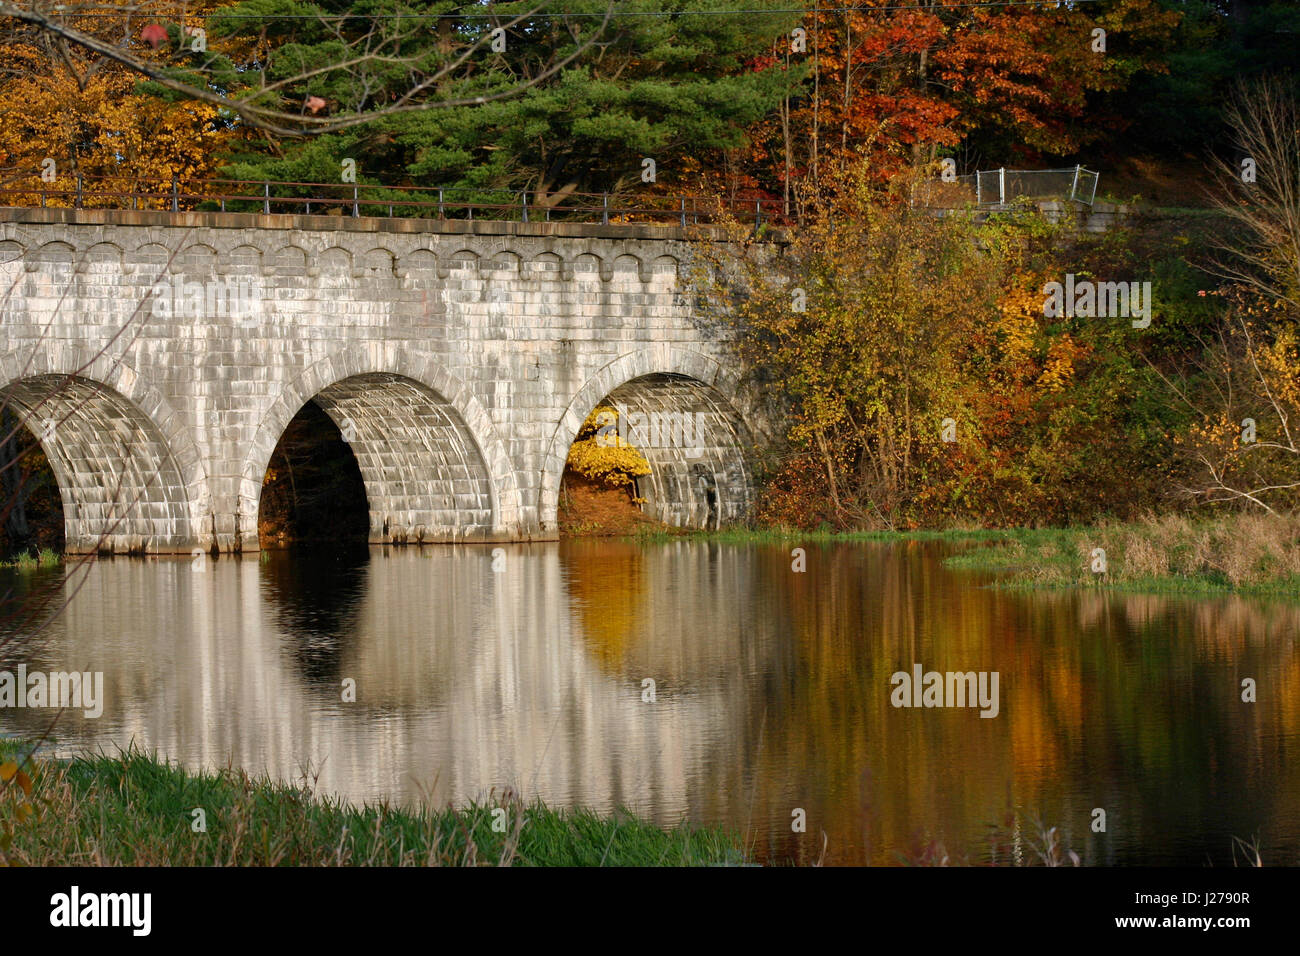 Wachusett Aqueduct Bridge on the Assabet River, Northborough, Massachusetts, in Autumn Stock Photo